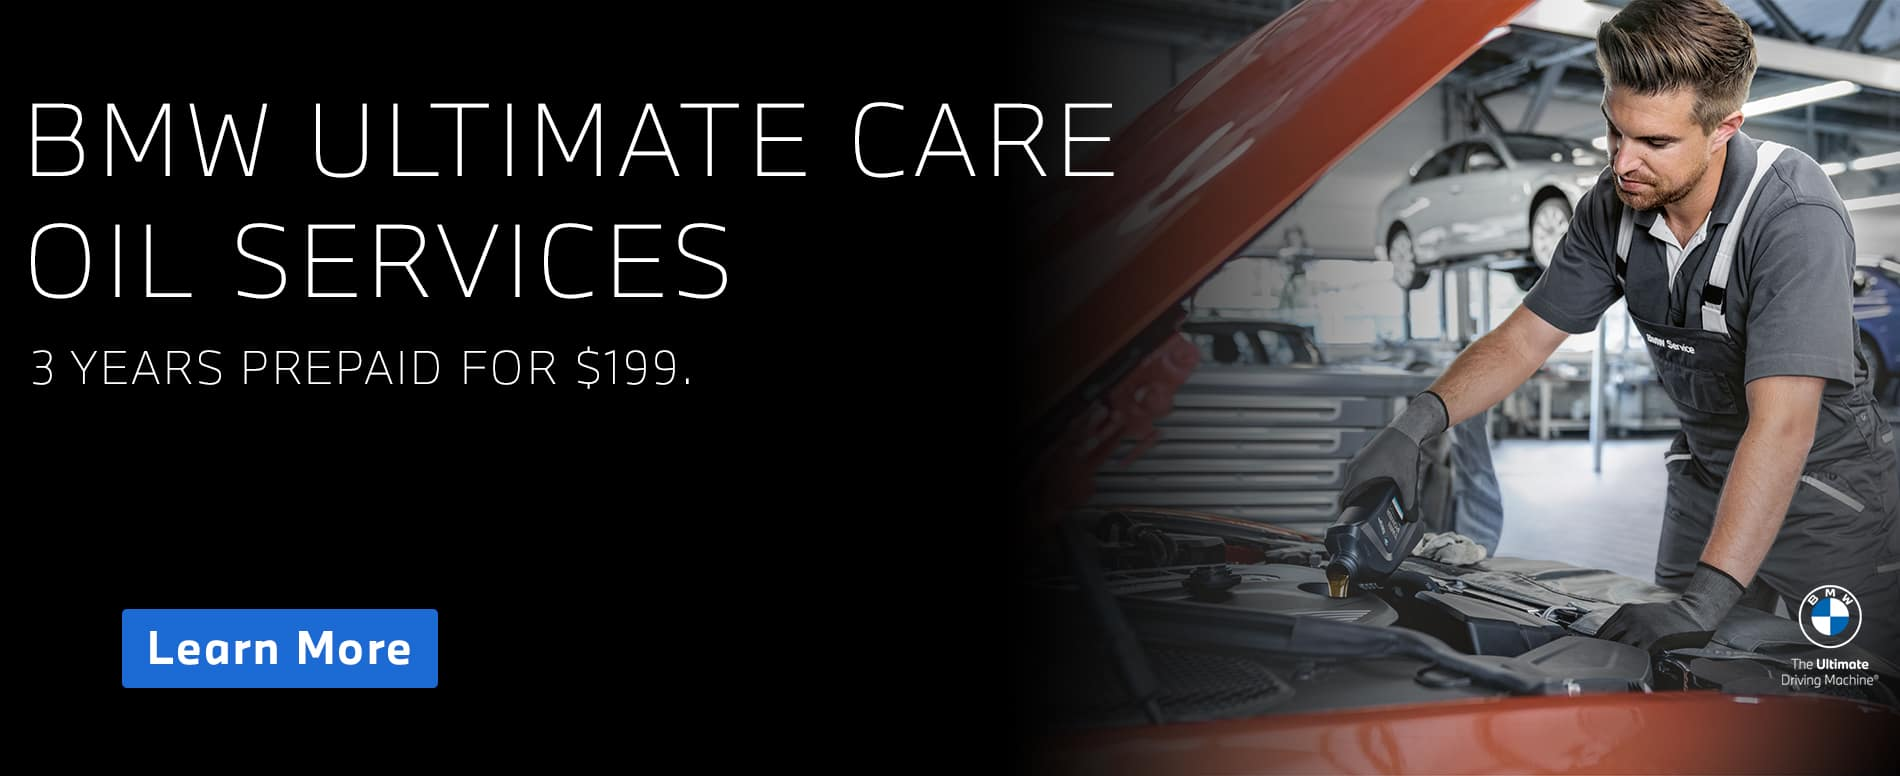 BMW Ultimate Care Oil Services, 3 years of prepaid oil changes for just $199!